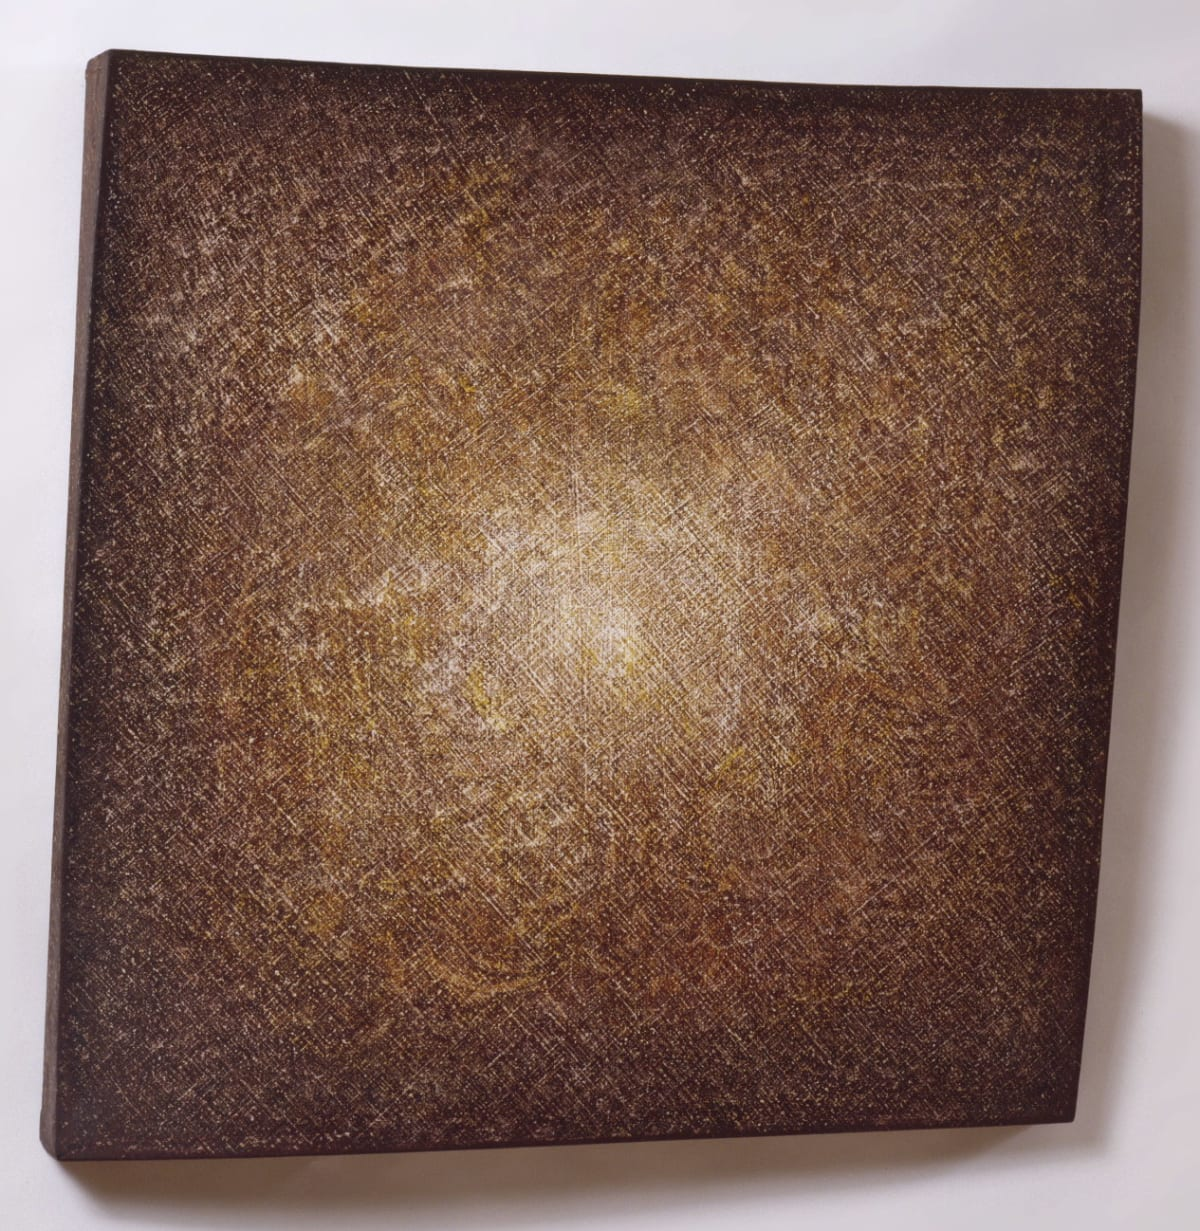 Beppe Kessler, Brown sanded canvas